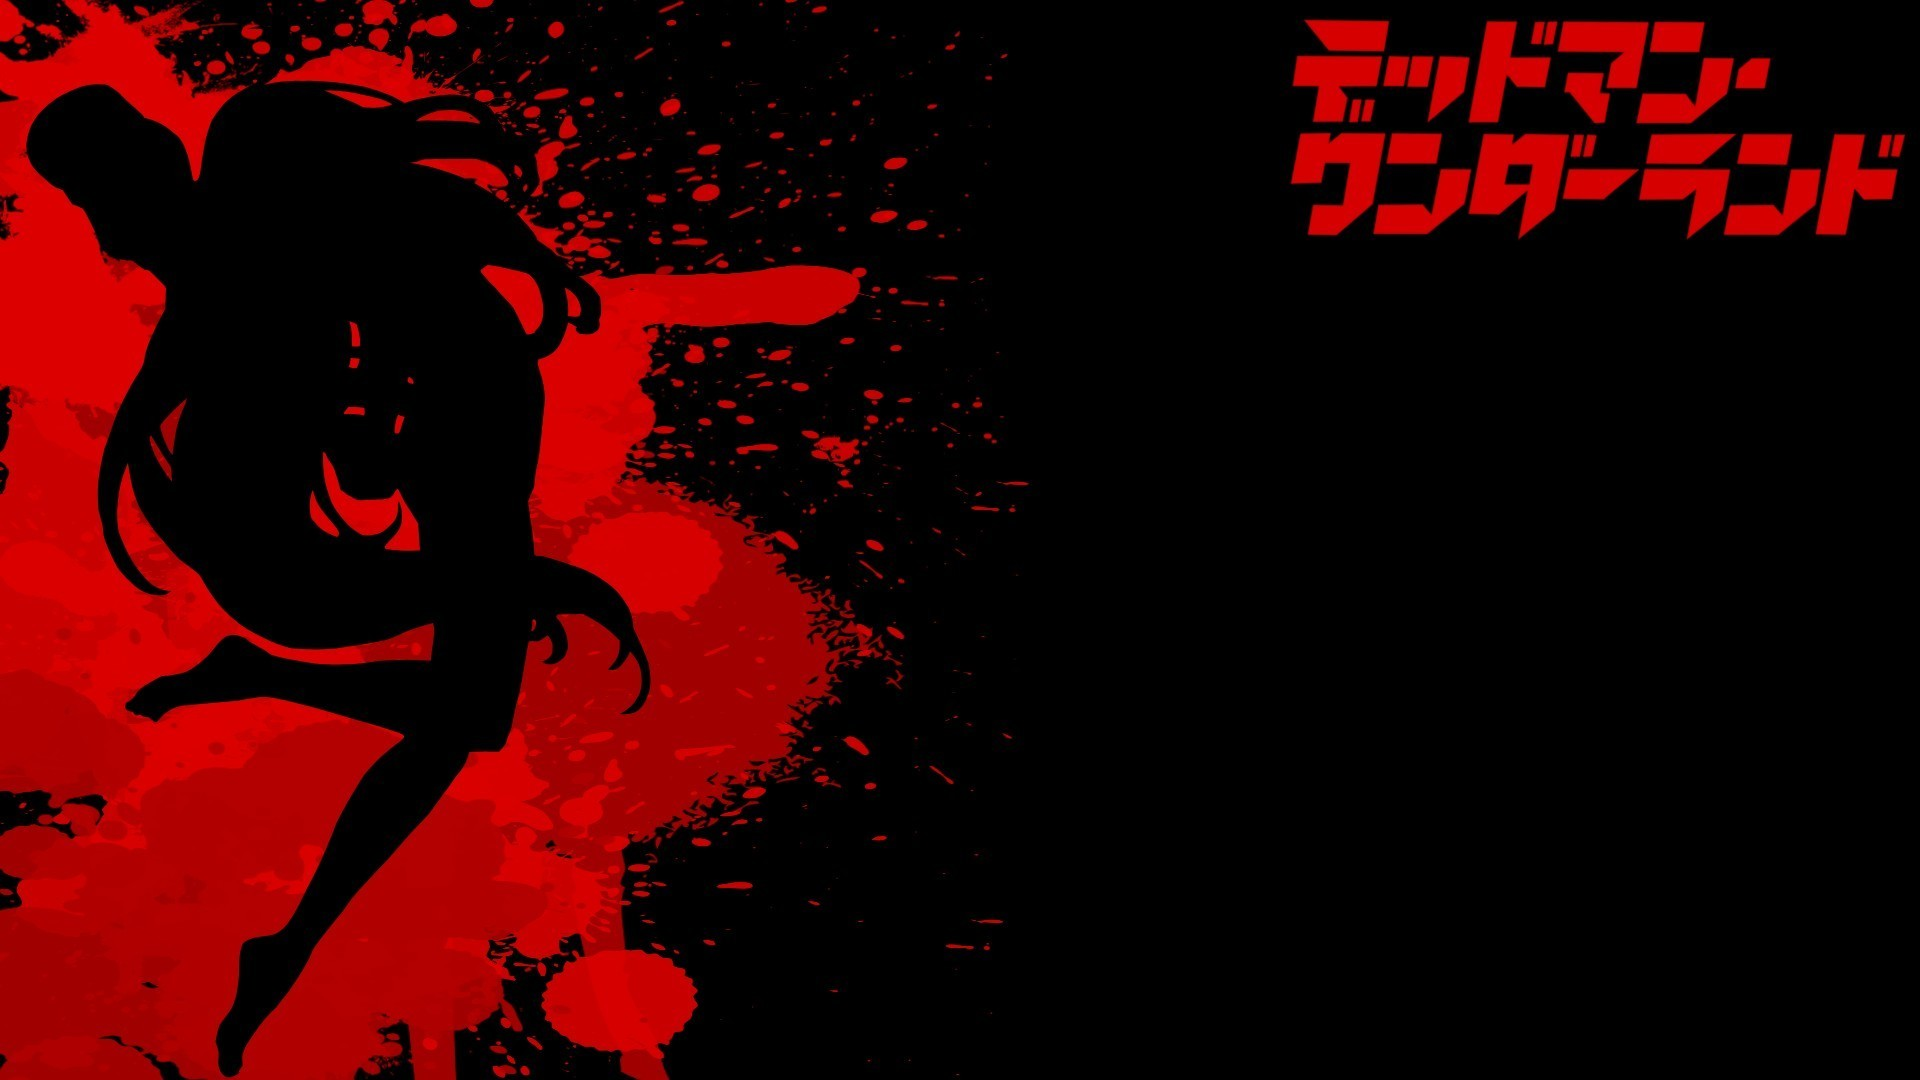 1920x1080 deadman-wonderland-wallpaperlarge-deadman-wonderland-wallpaper